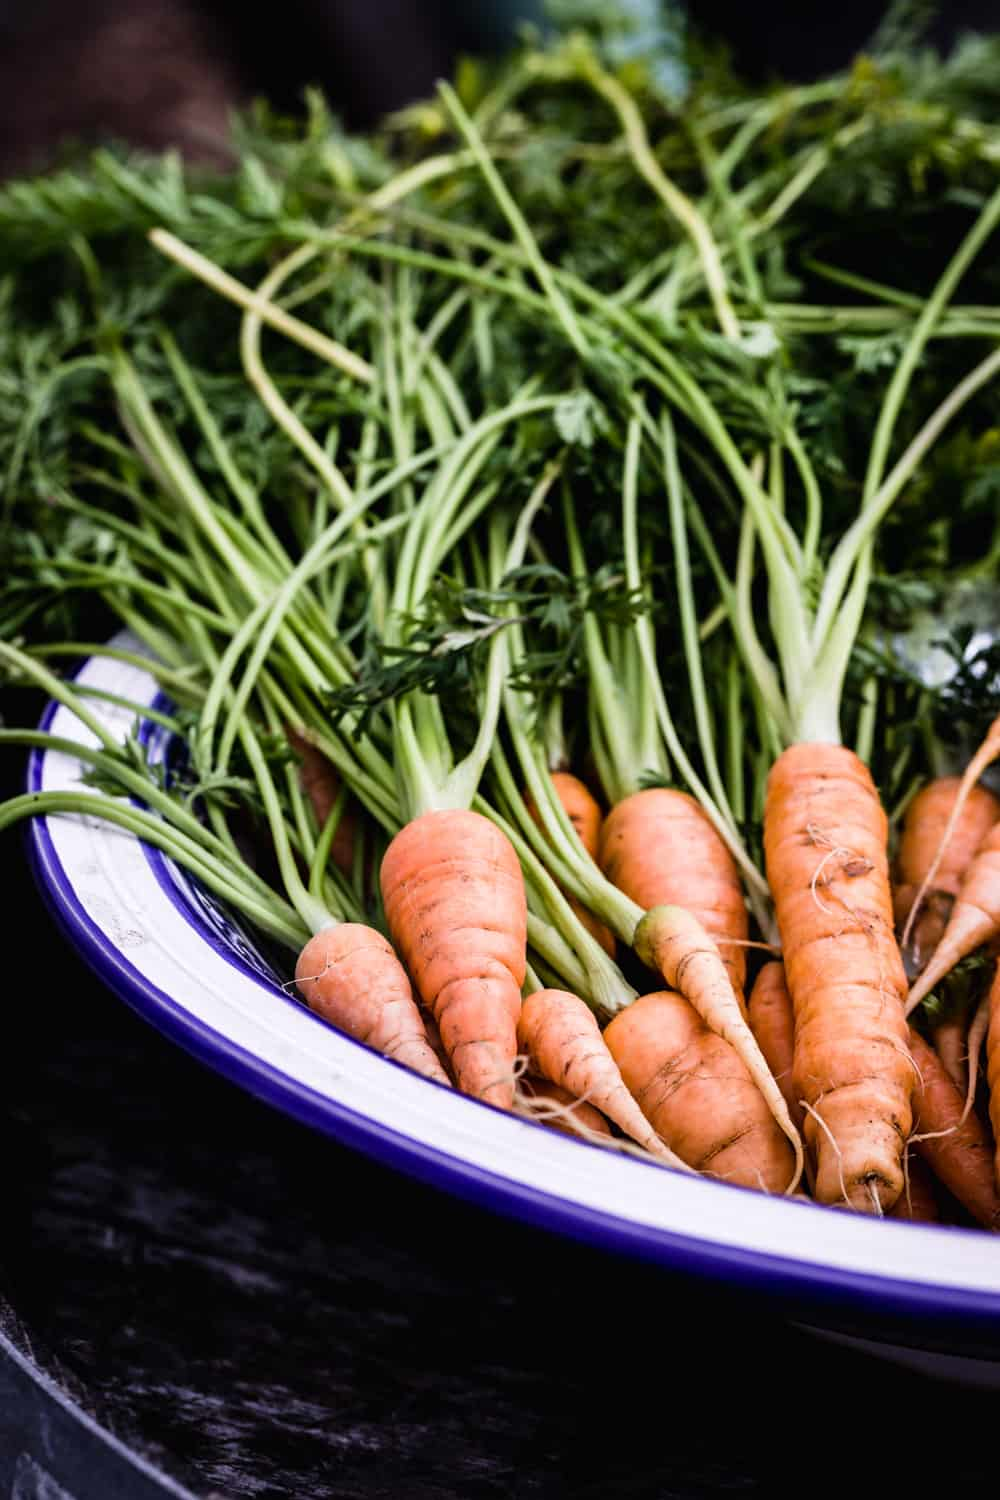 Fresh carrots from the land on display at Davero's pick up party.